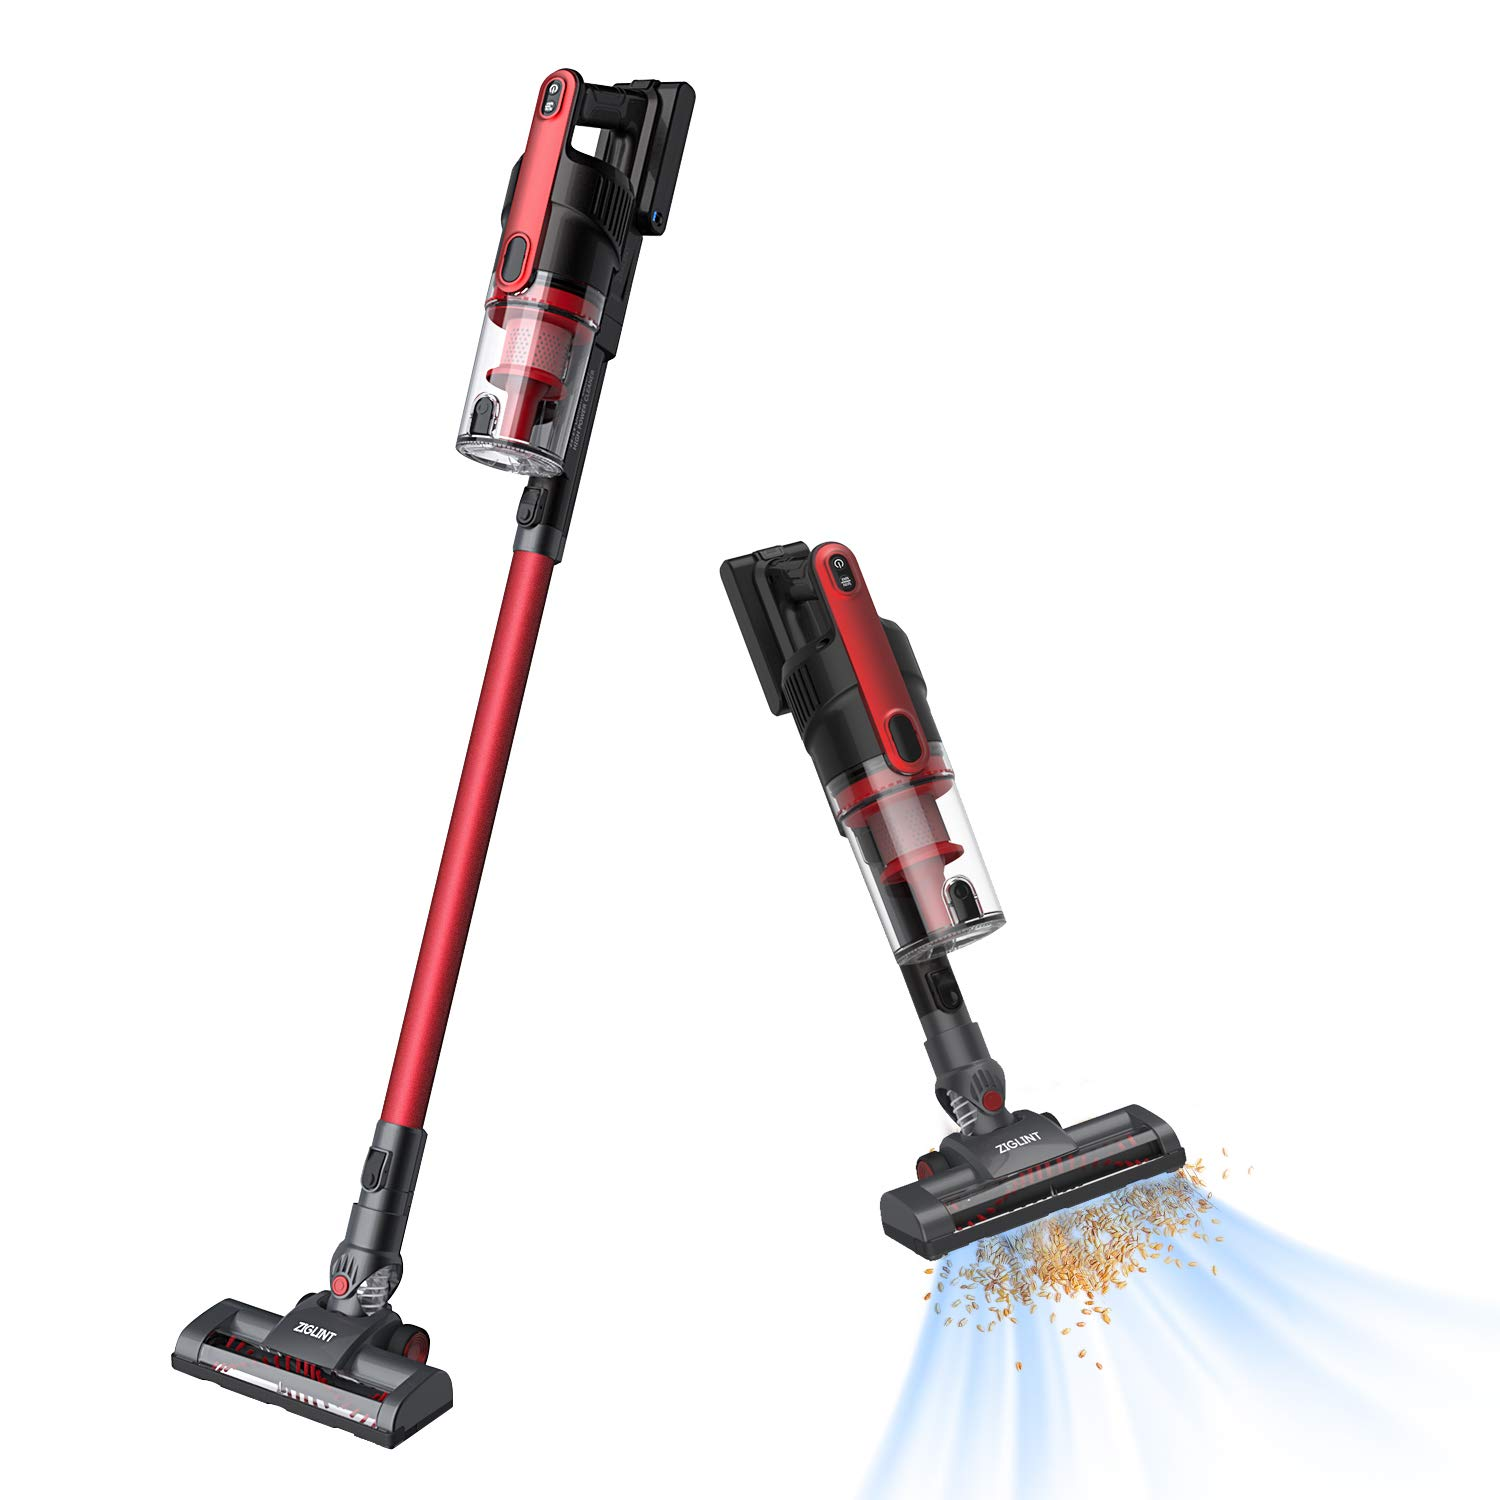 Stick Vacuums Amp Electric Brooms Online Shopping For